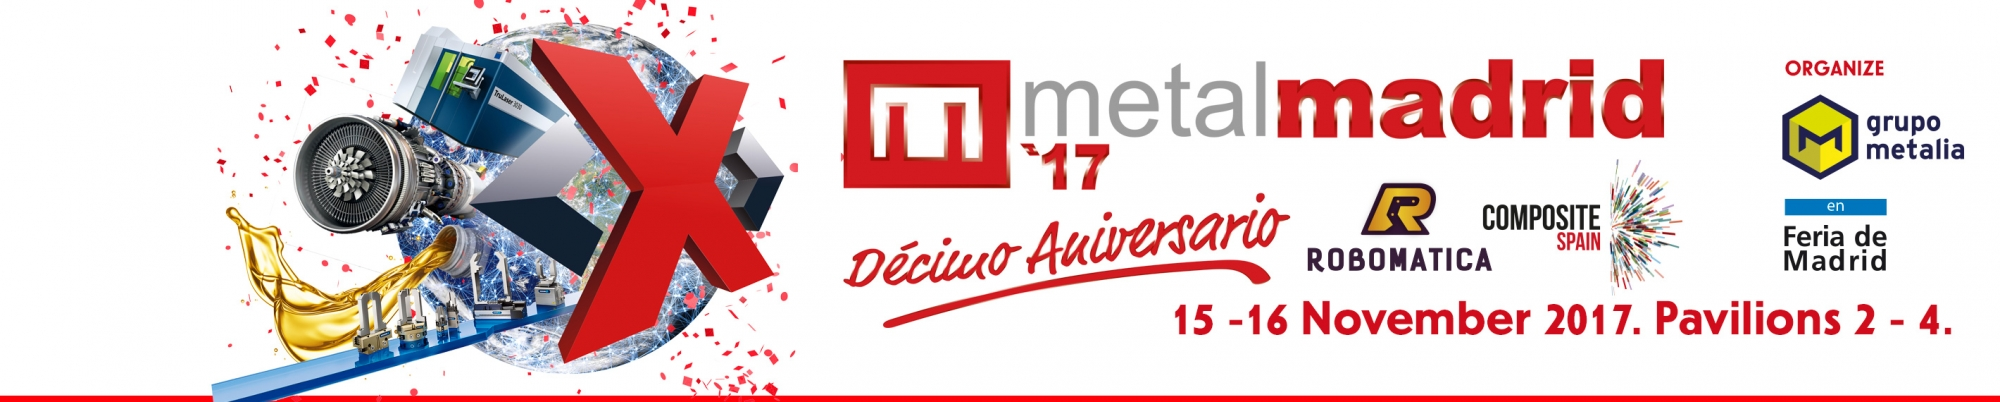 Salon Metalmadrid 2017